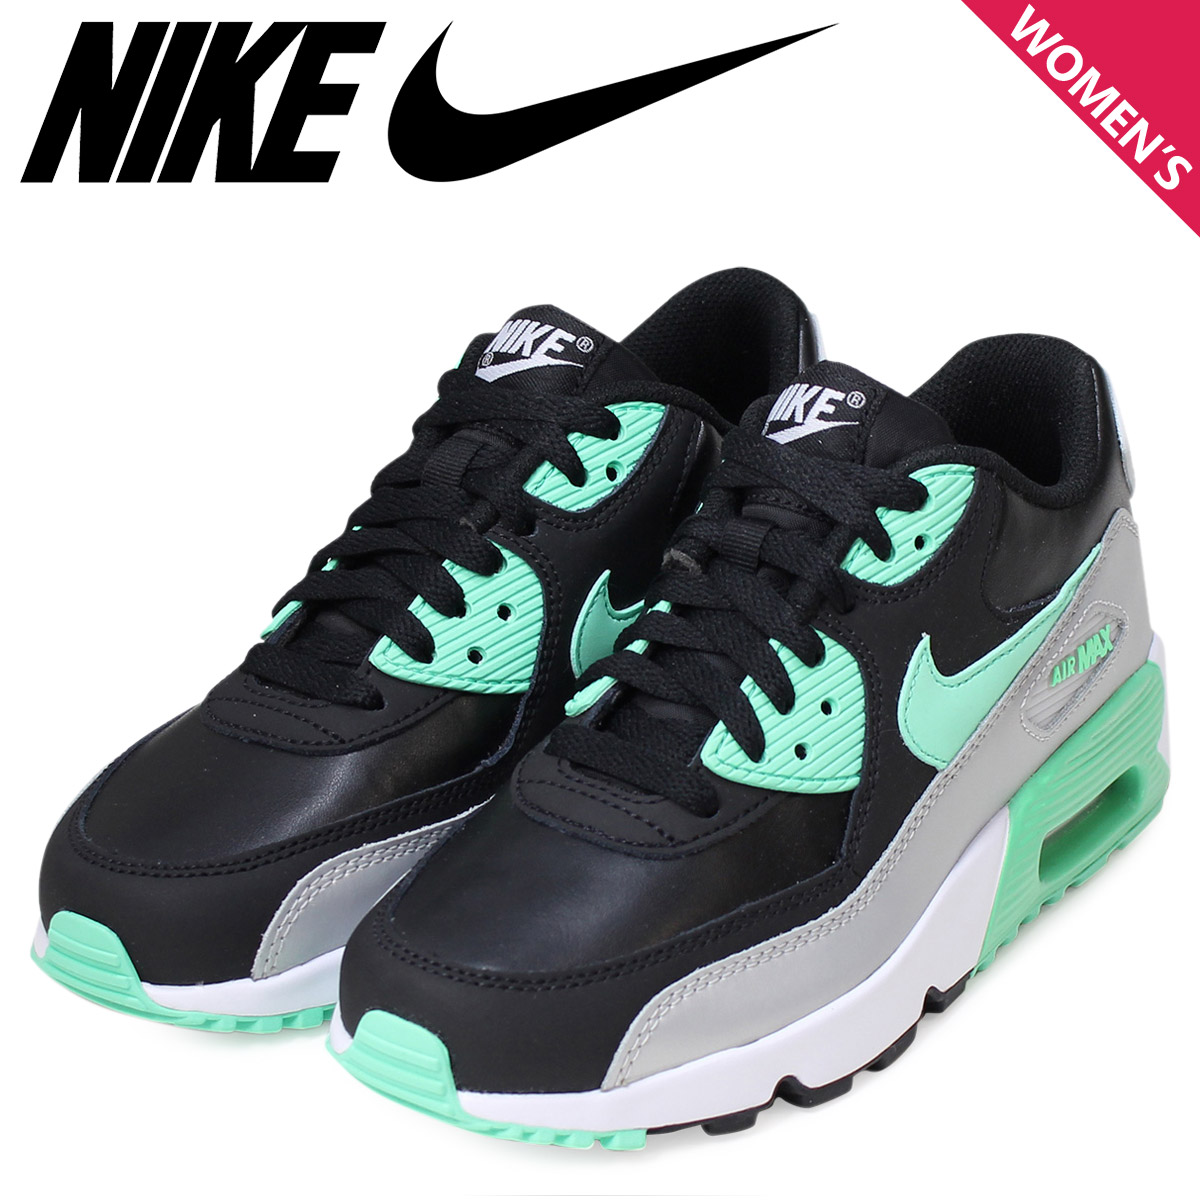 NIKE Kie Ney AMAX Lady's sneakers AIR MAX 90 LTR GS Air Max 833,376 001 shoes black black